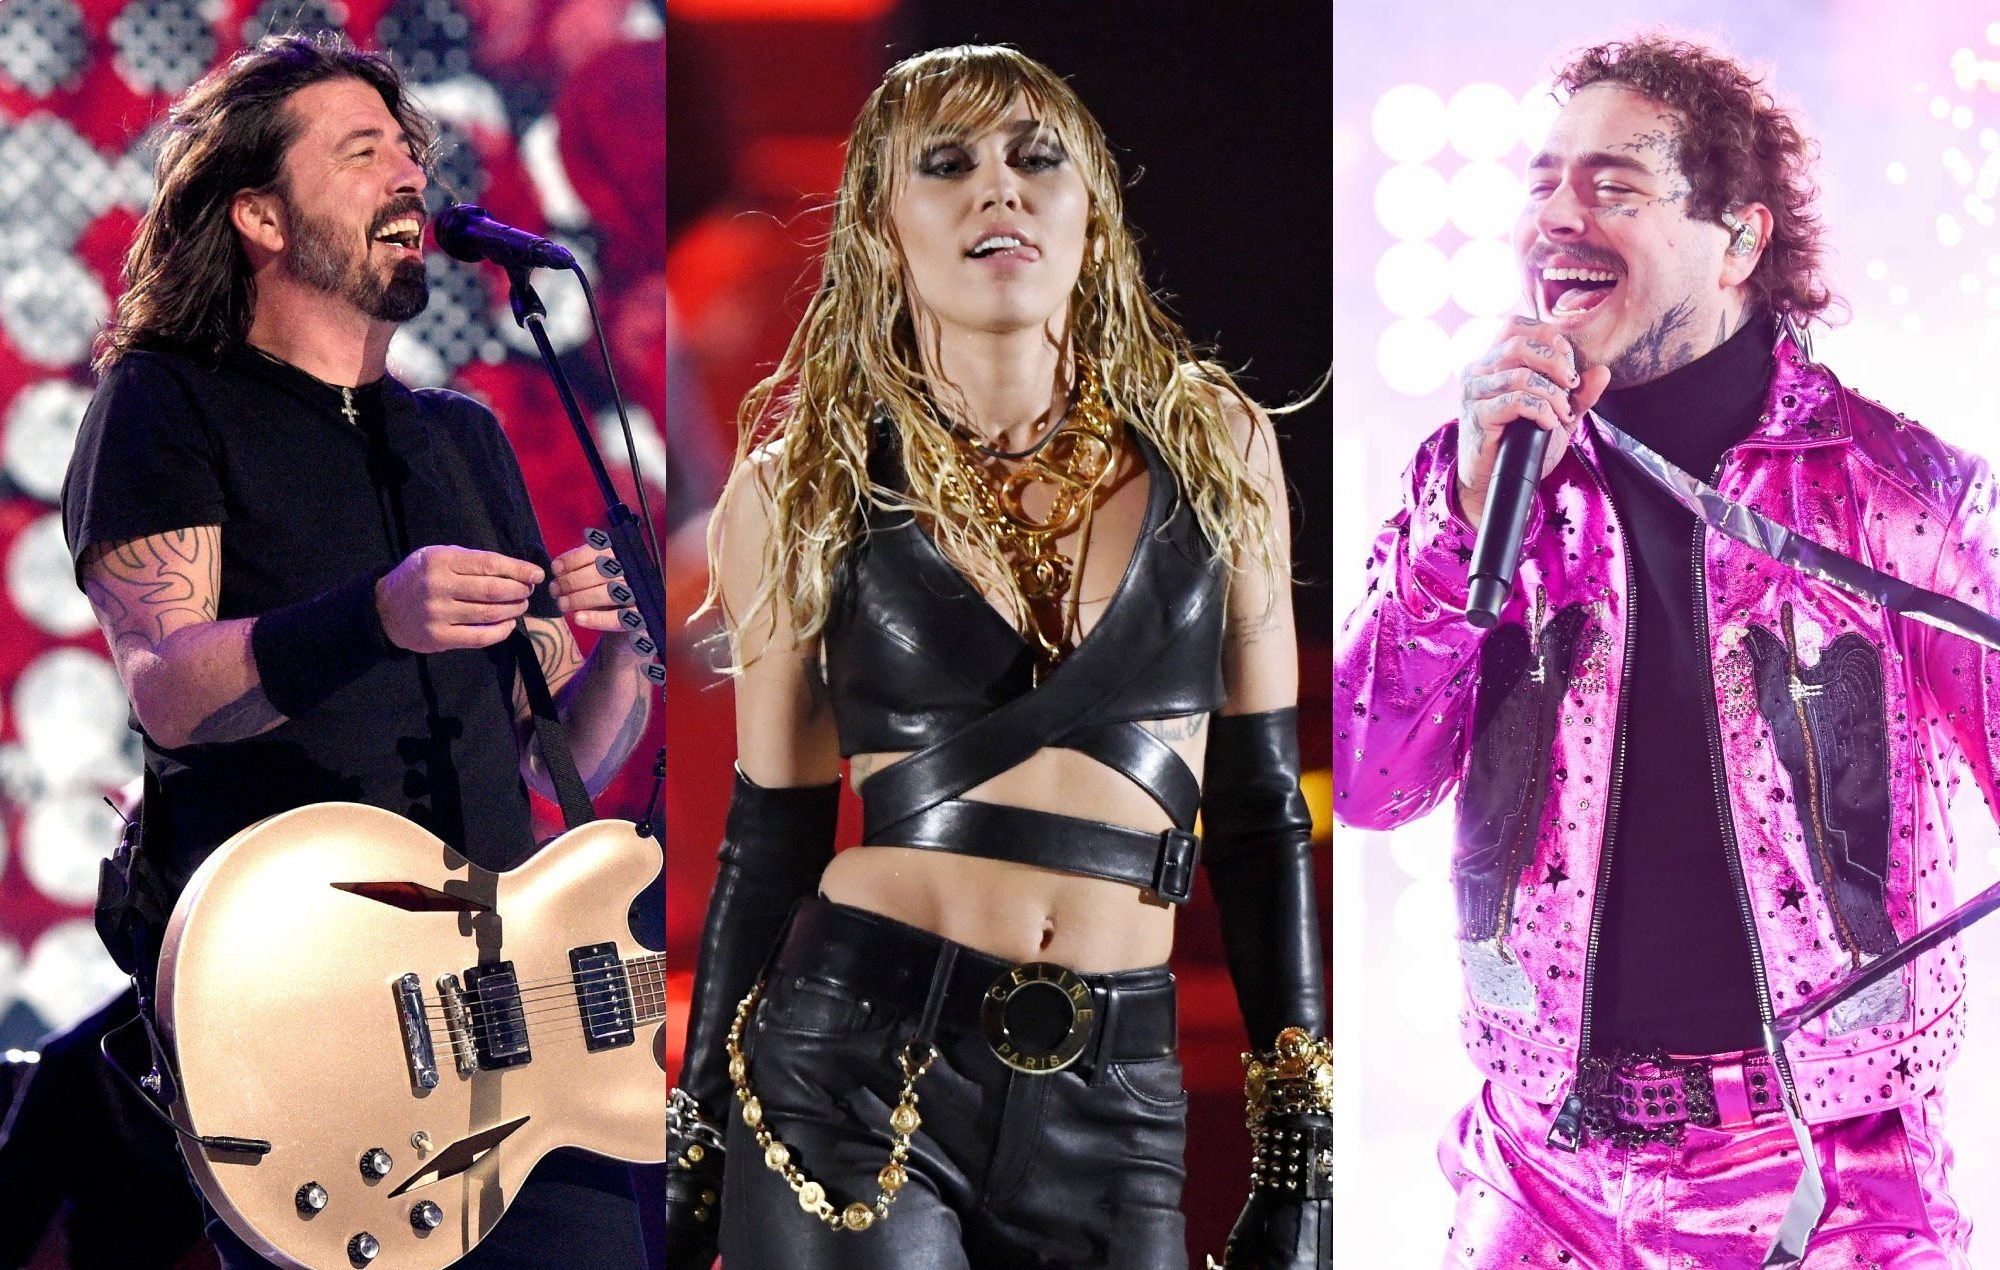 Foo Fighters, Post Malone and Miley Cyrus among acts announced for Lollapalooza Chicago